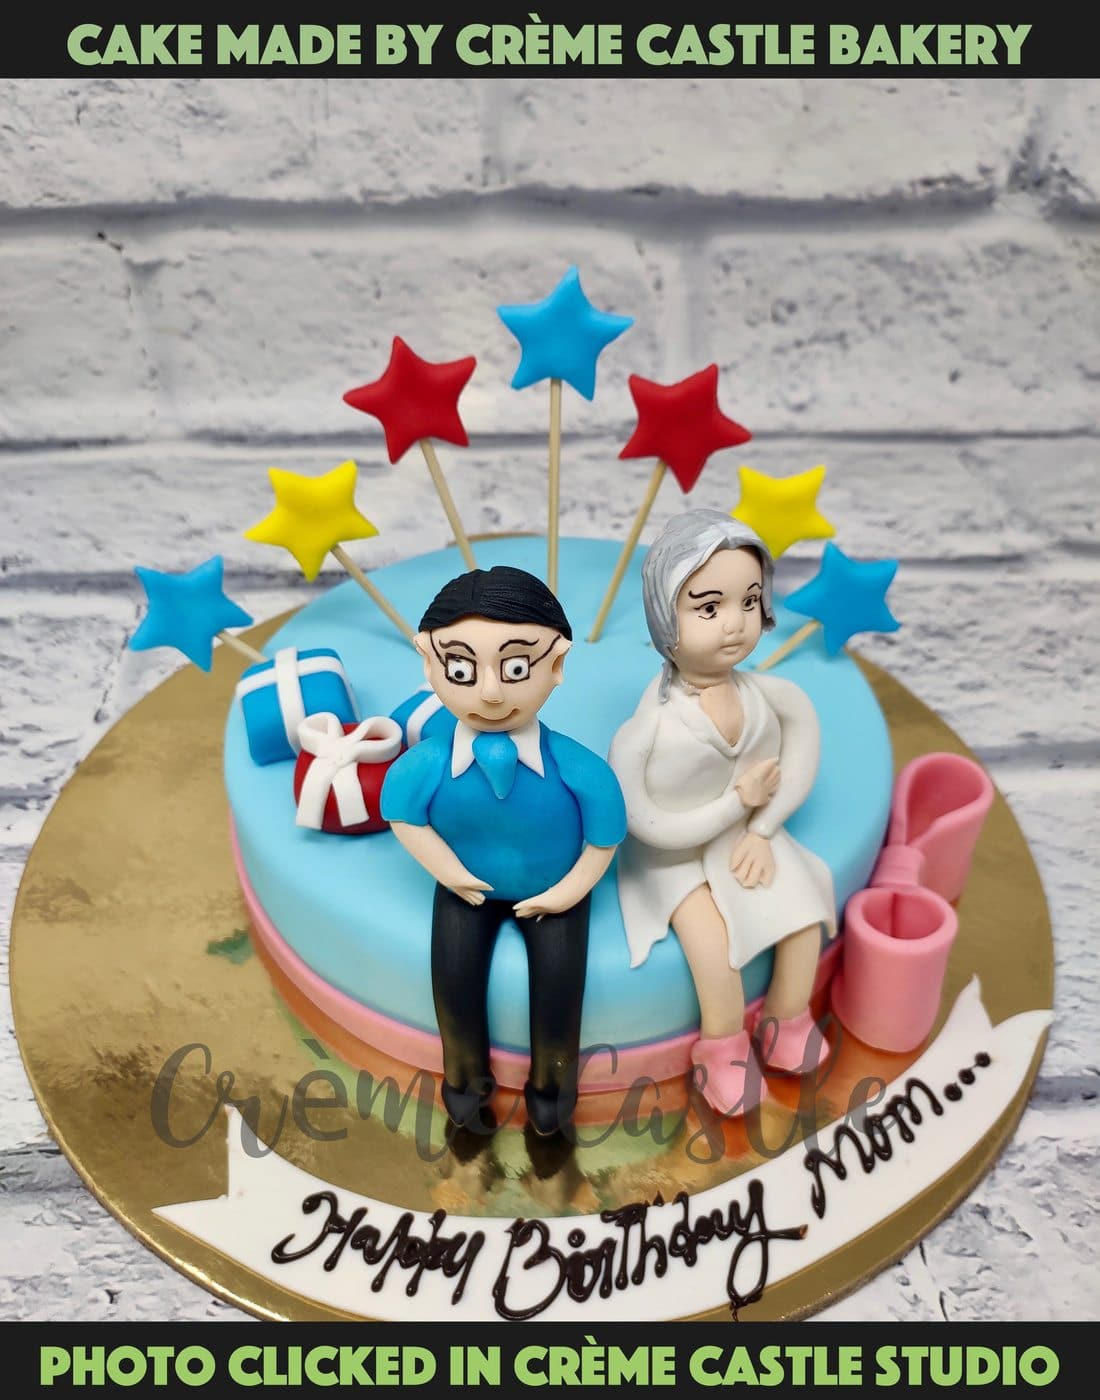 A cake for an elderly couple to celebrate their anniversary. A true symbol of love